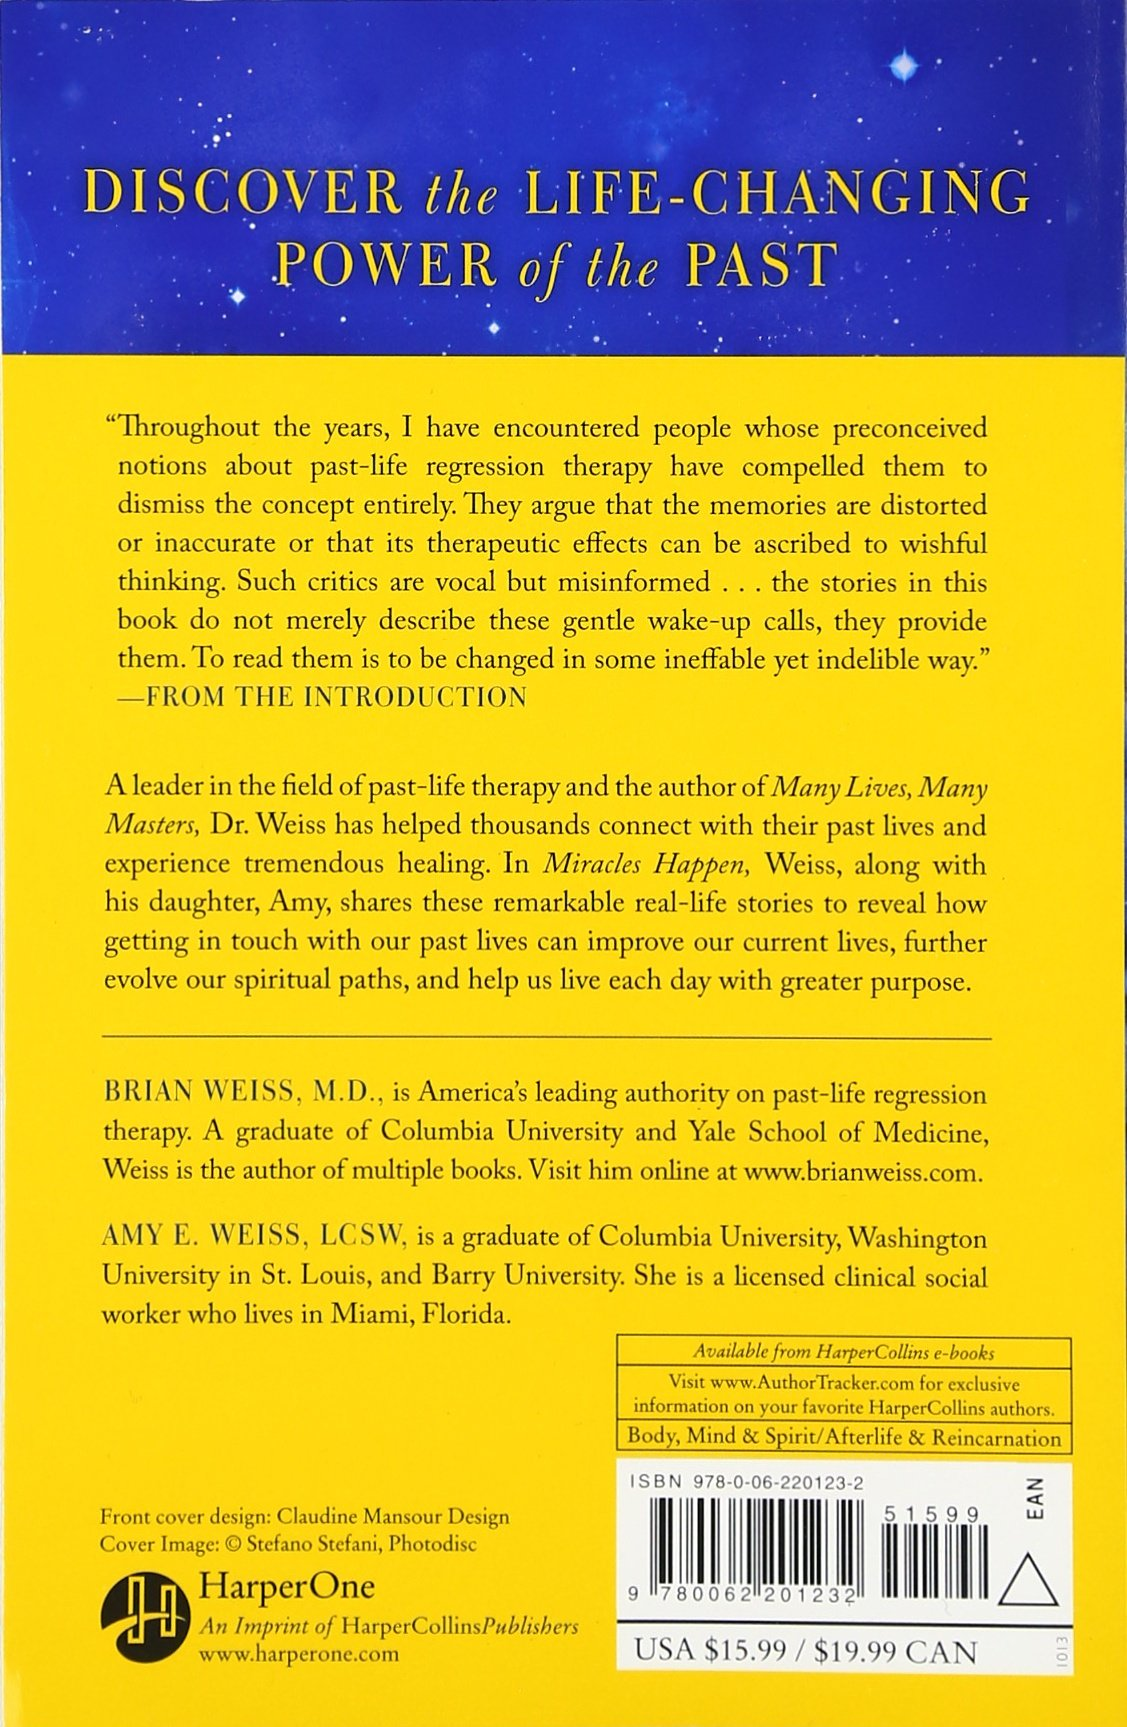 Miracles Happen: The Transformational Healing Power Of Pastlife Memories:  Brian L Weiss, Amy E Weiss: 9780062201232: Amazon: Books